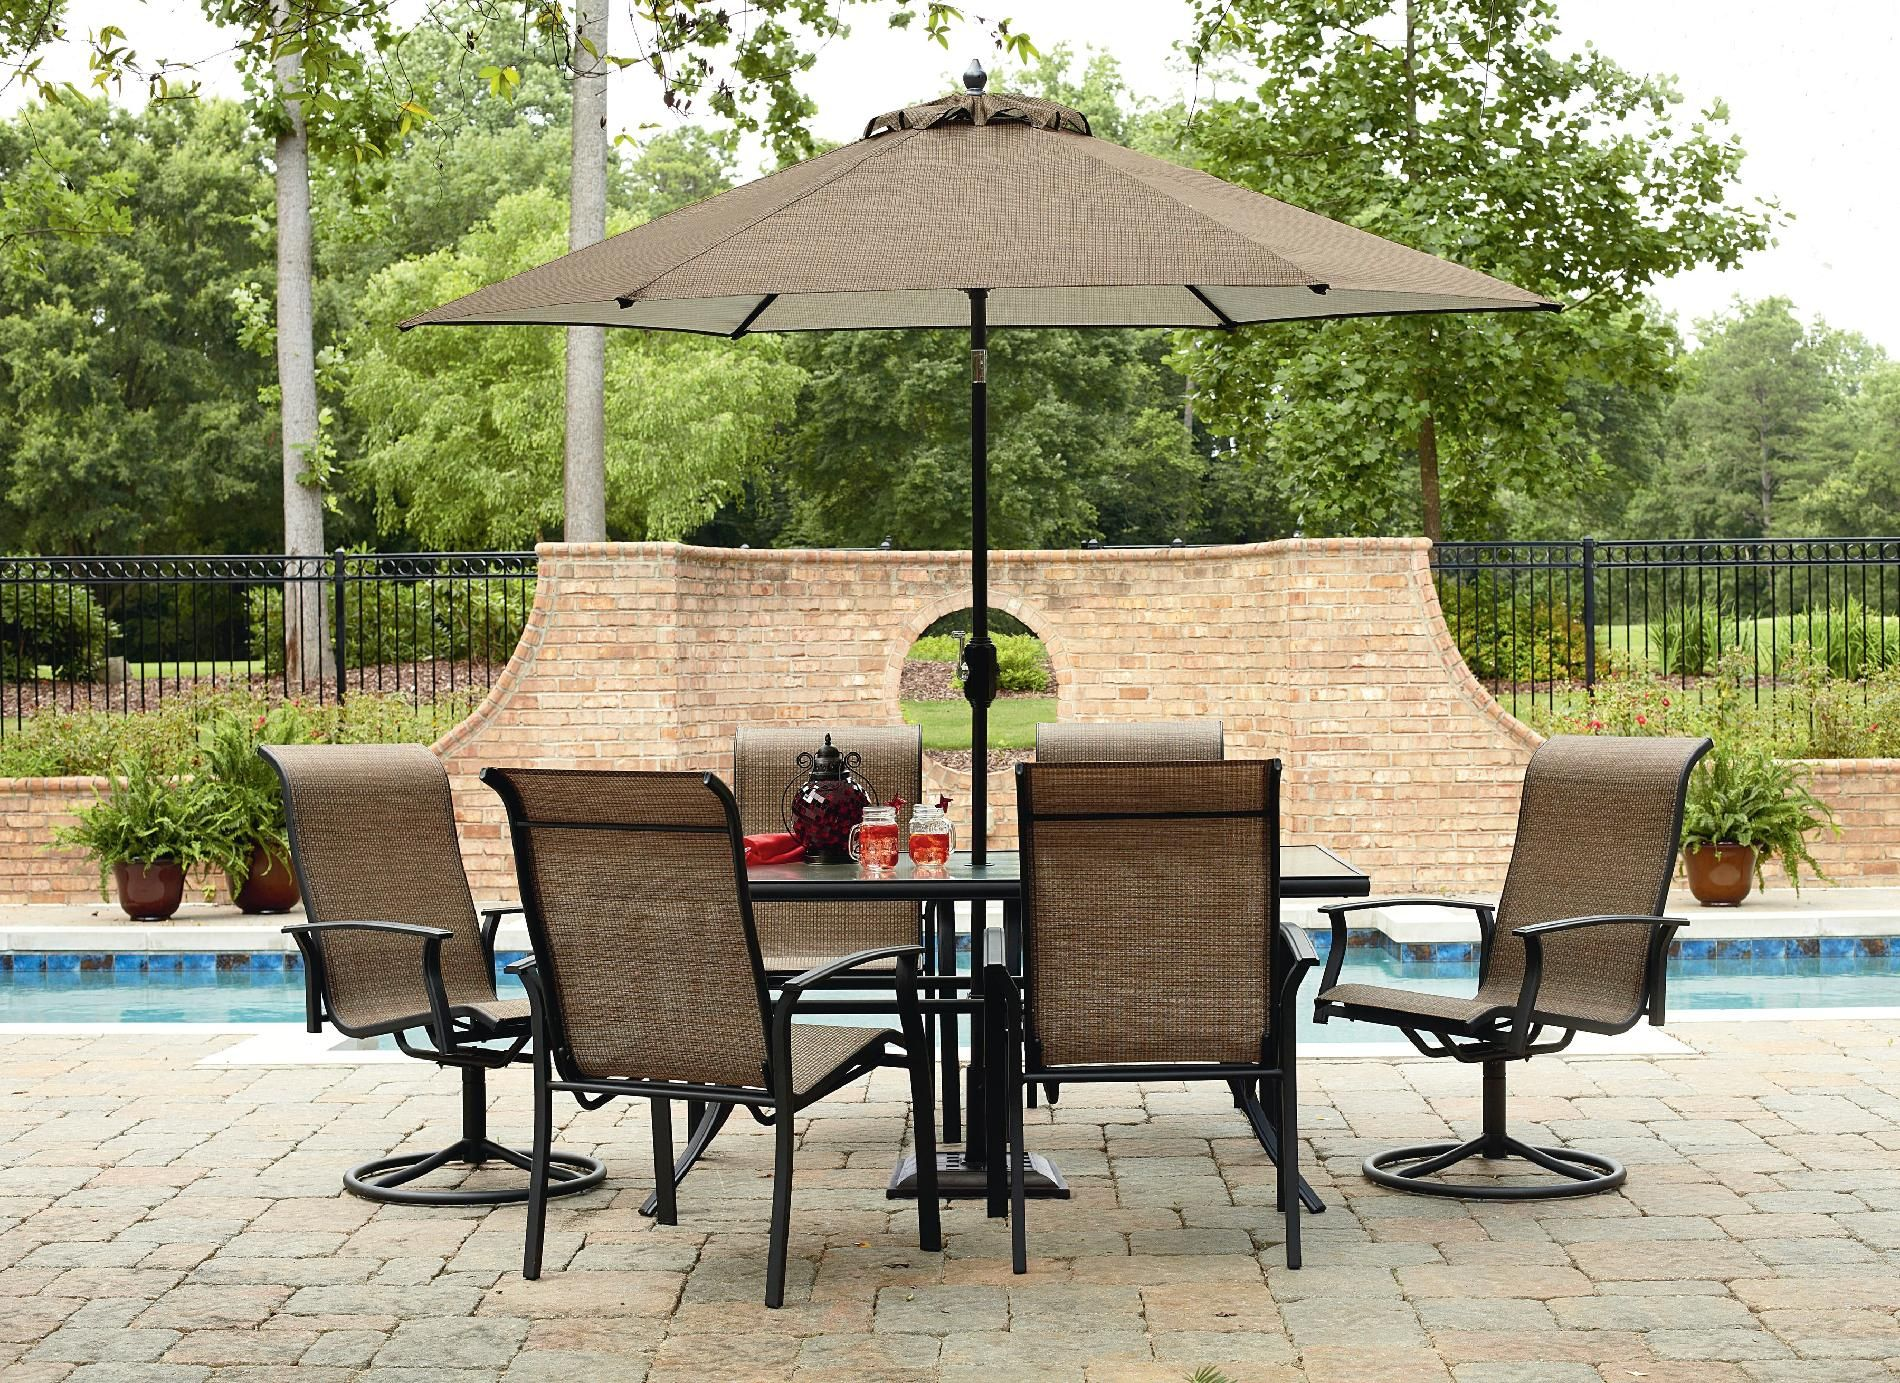 Best 25 Kmart patio furniture ideas on Pinterest